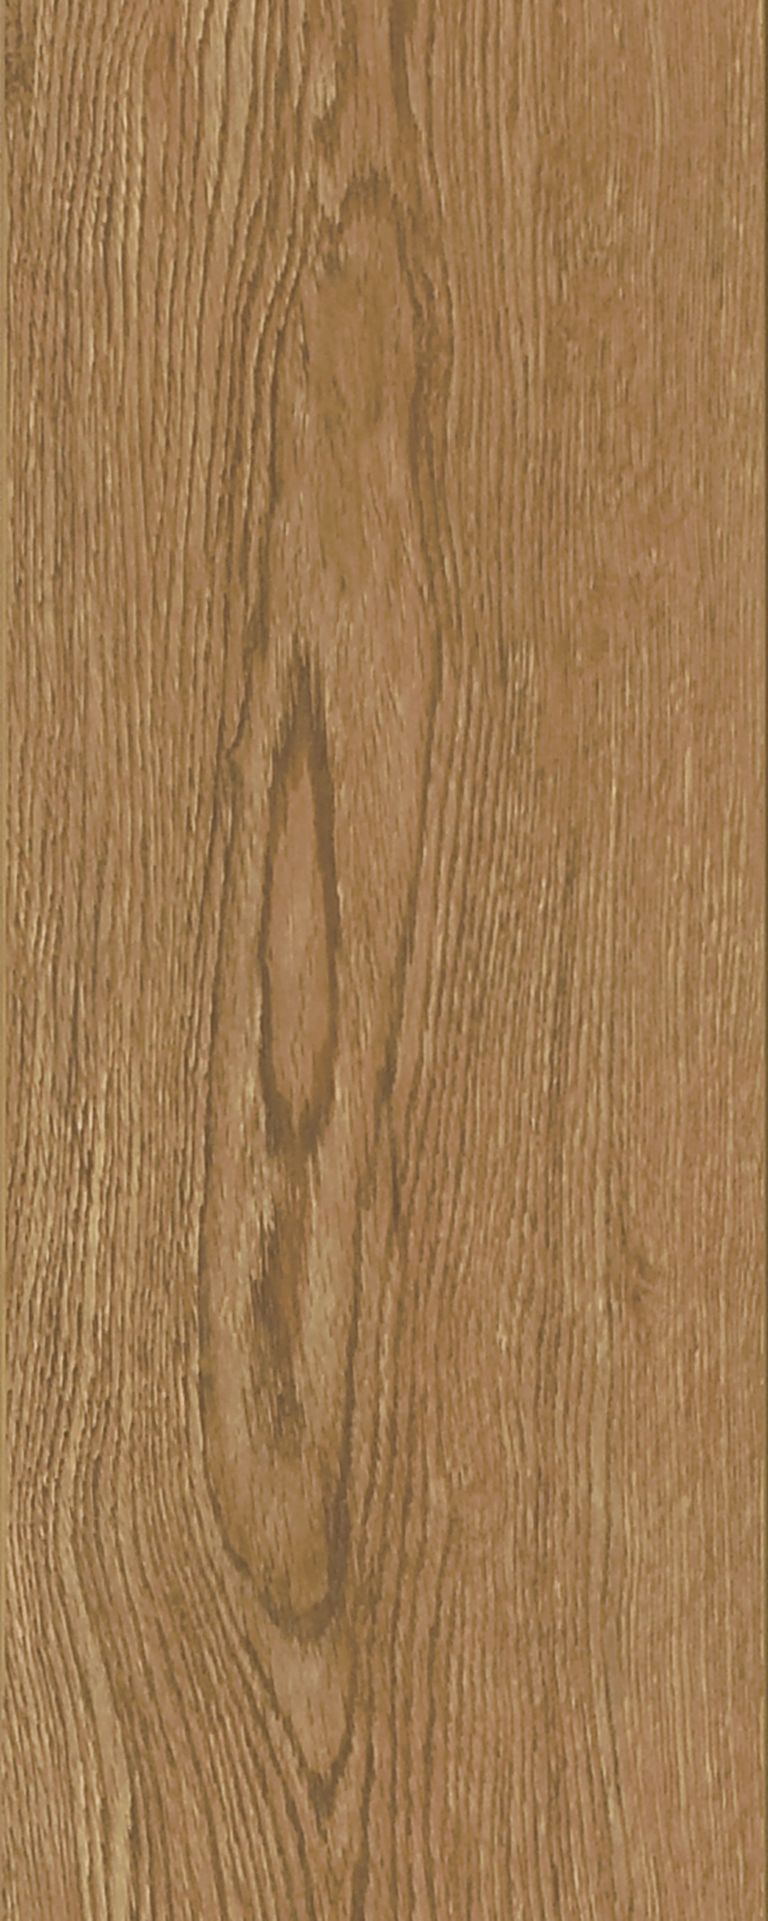 New England Long Plank - Boston Tea Laminado L6580